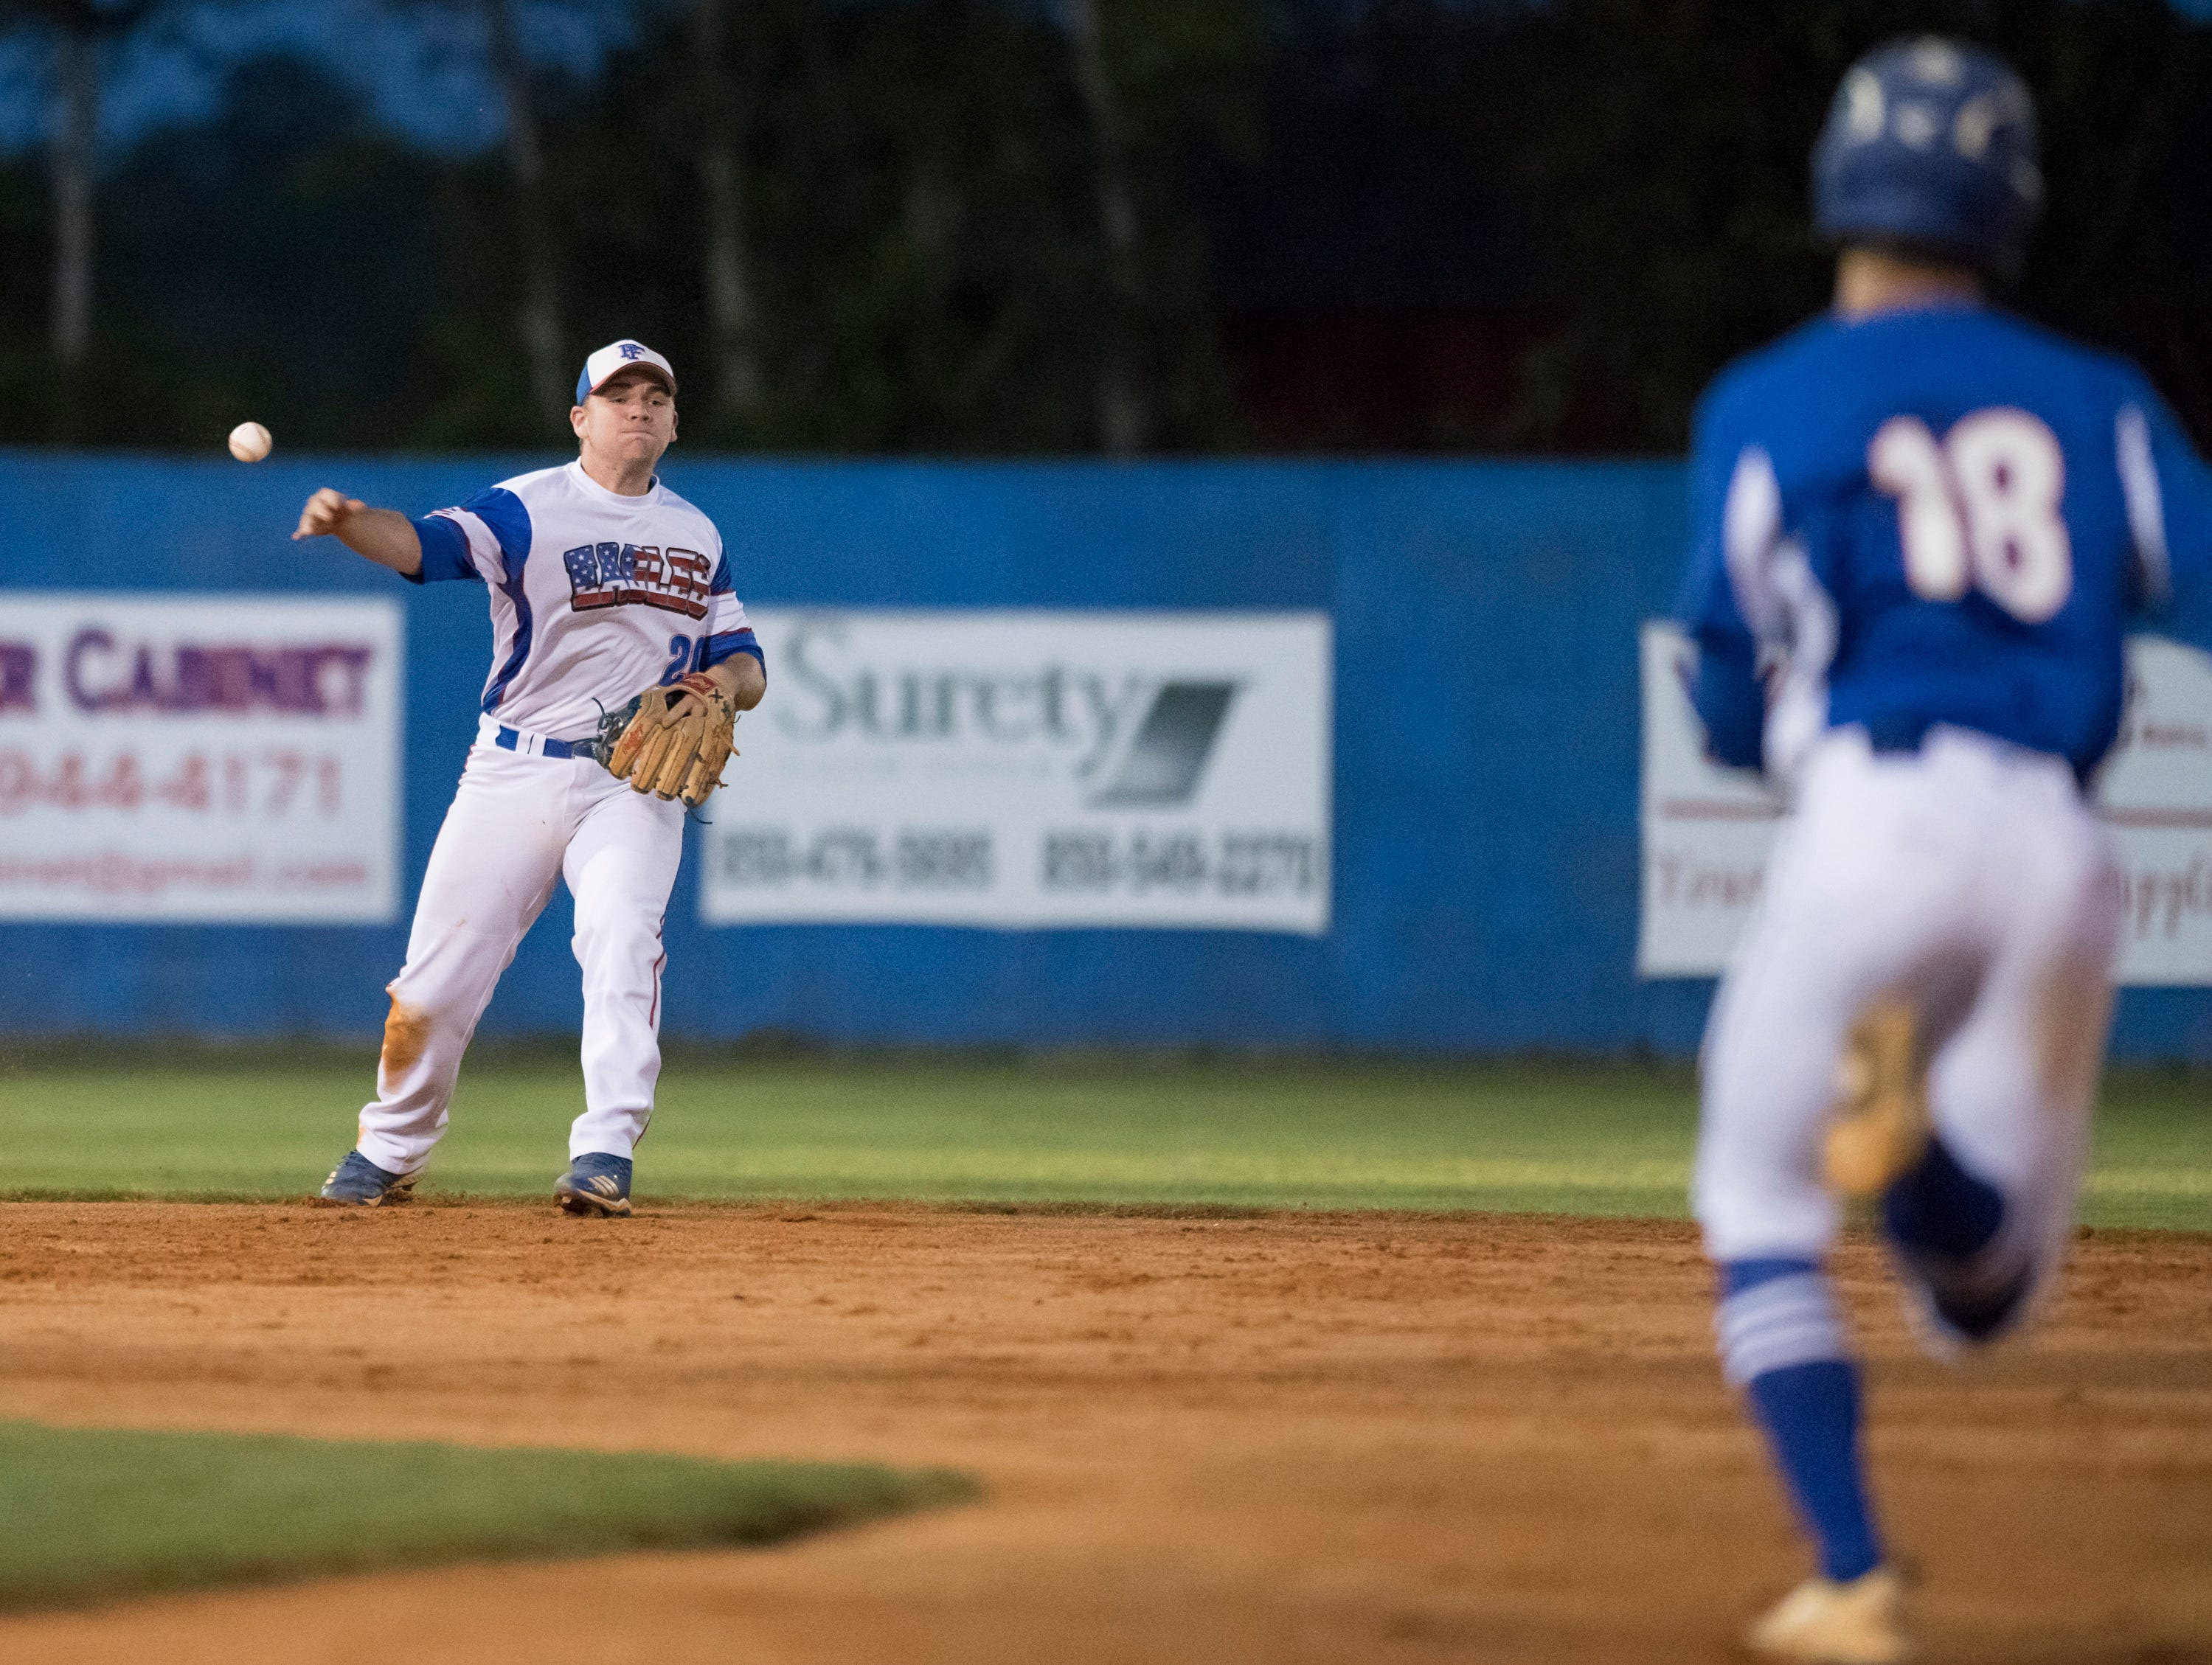 Shortstop Timmy Williams (20) tosses to second for the third out in the top of the 2nd inning during the Christian Educational Consortium vs Pine Forest baseball game at Pine Forest High School in Pensacola on Wednesday, April 3, 2019.